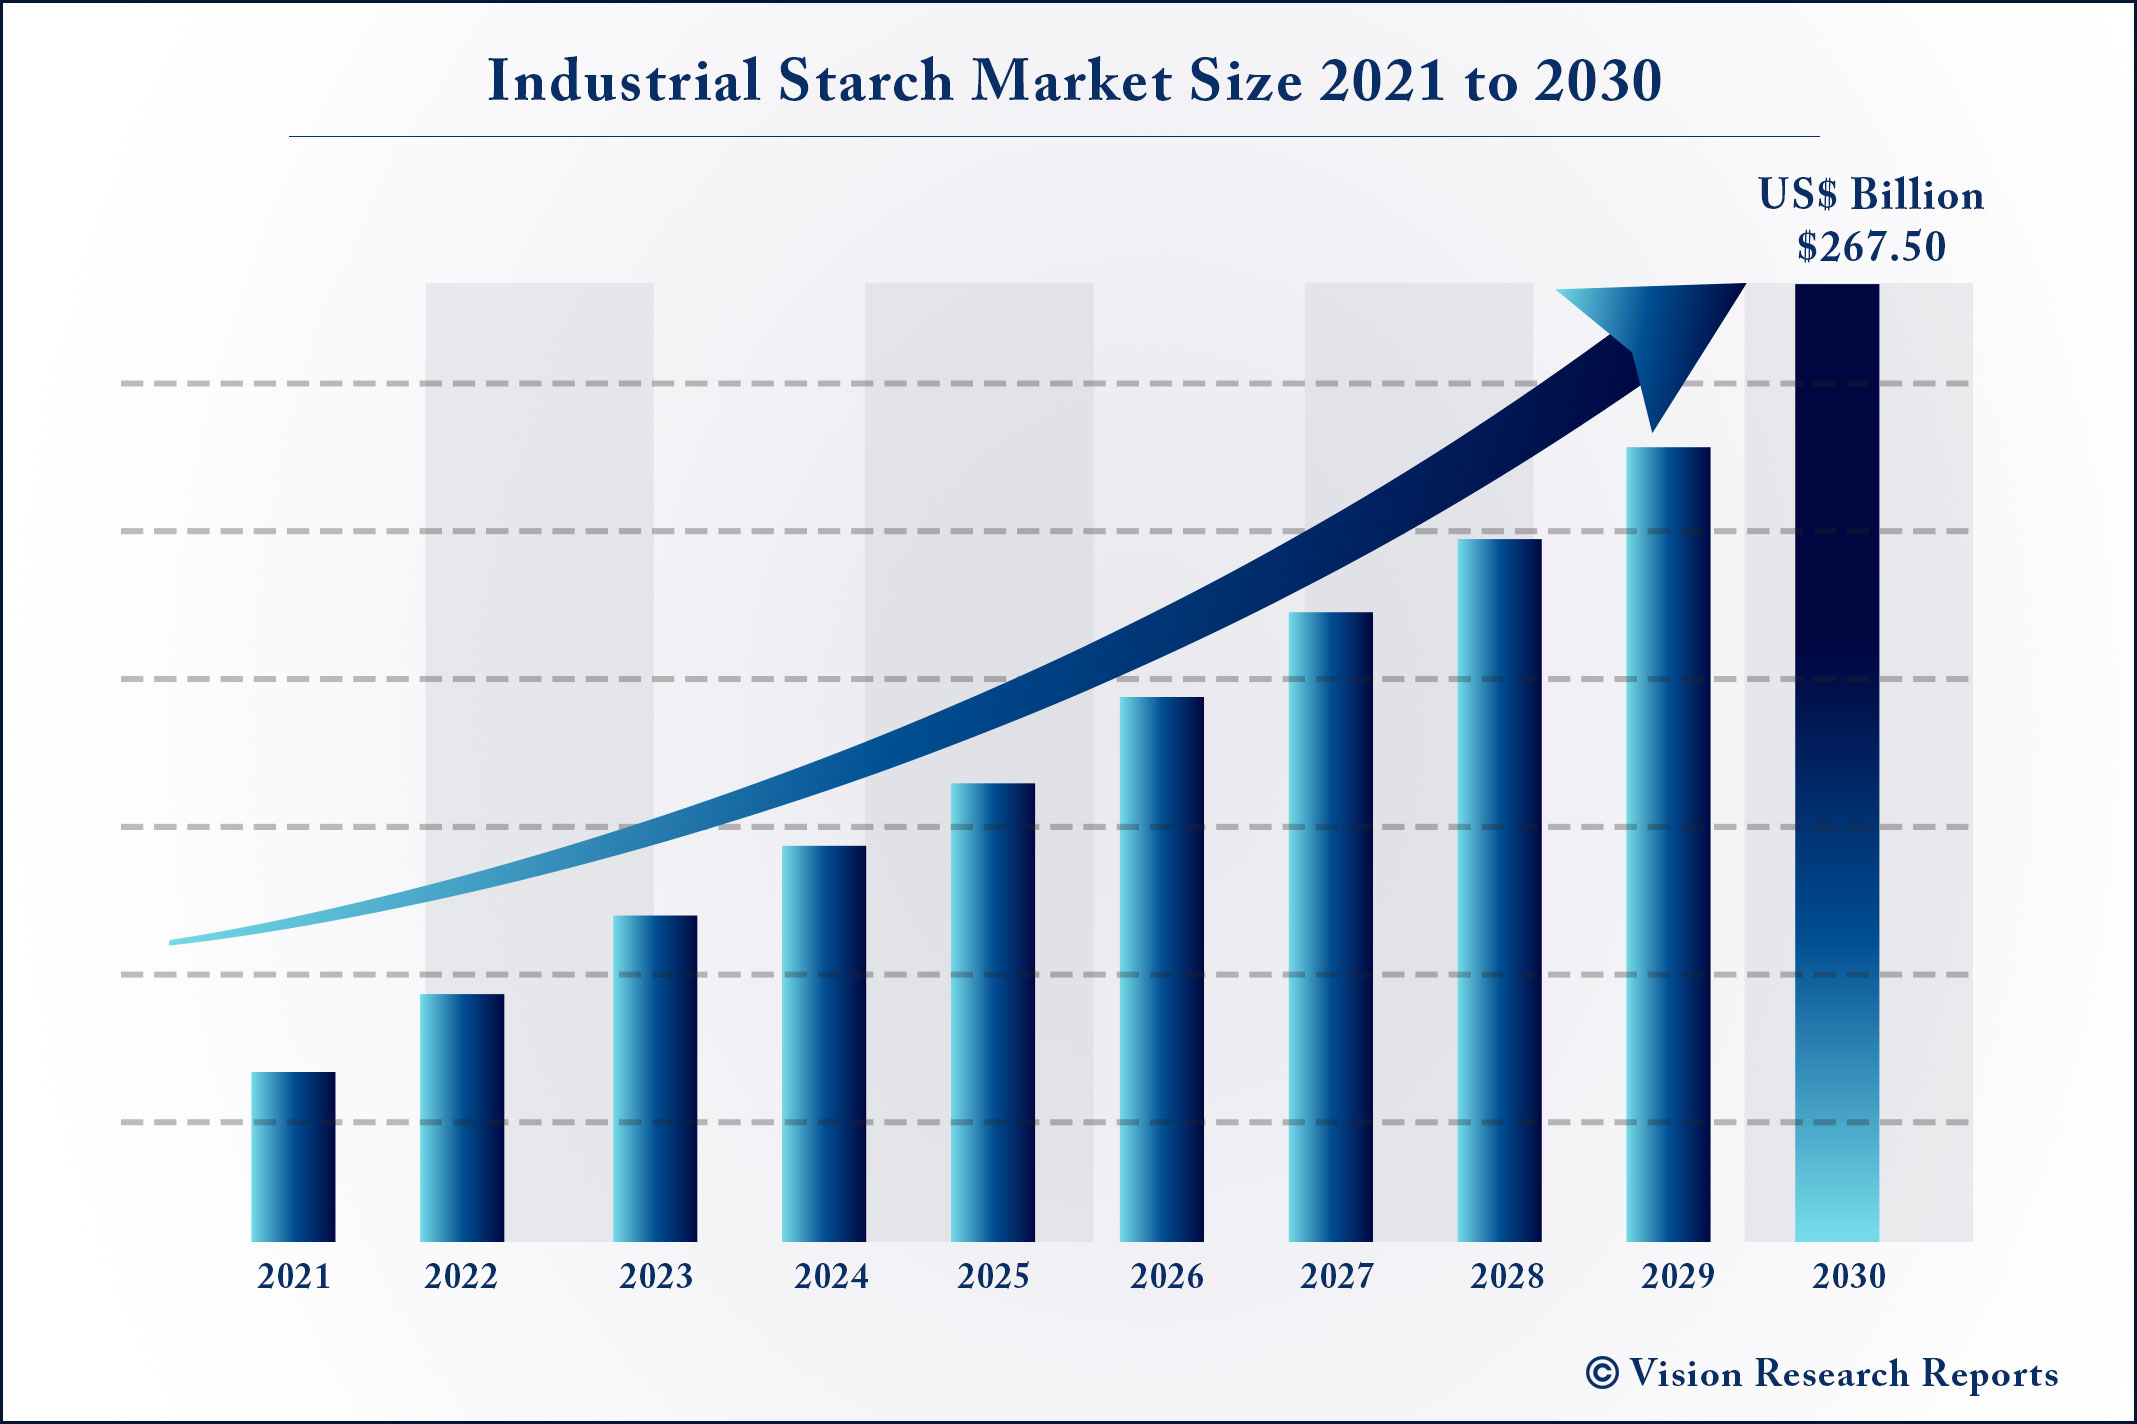 Industrial Starch Market Size 2021 to 2030